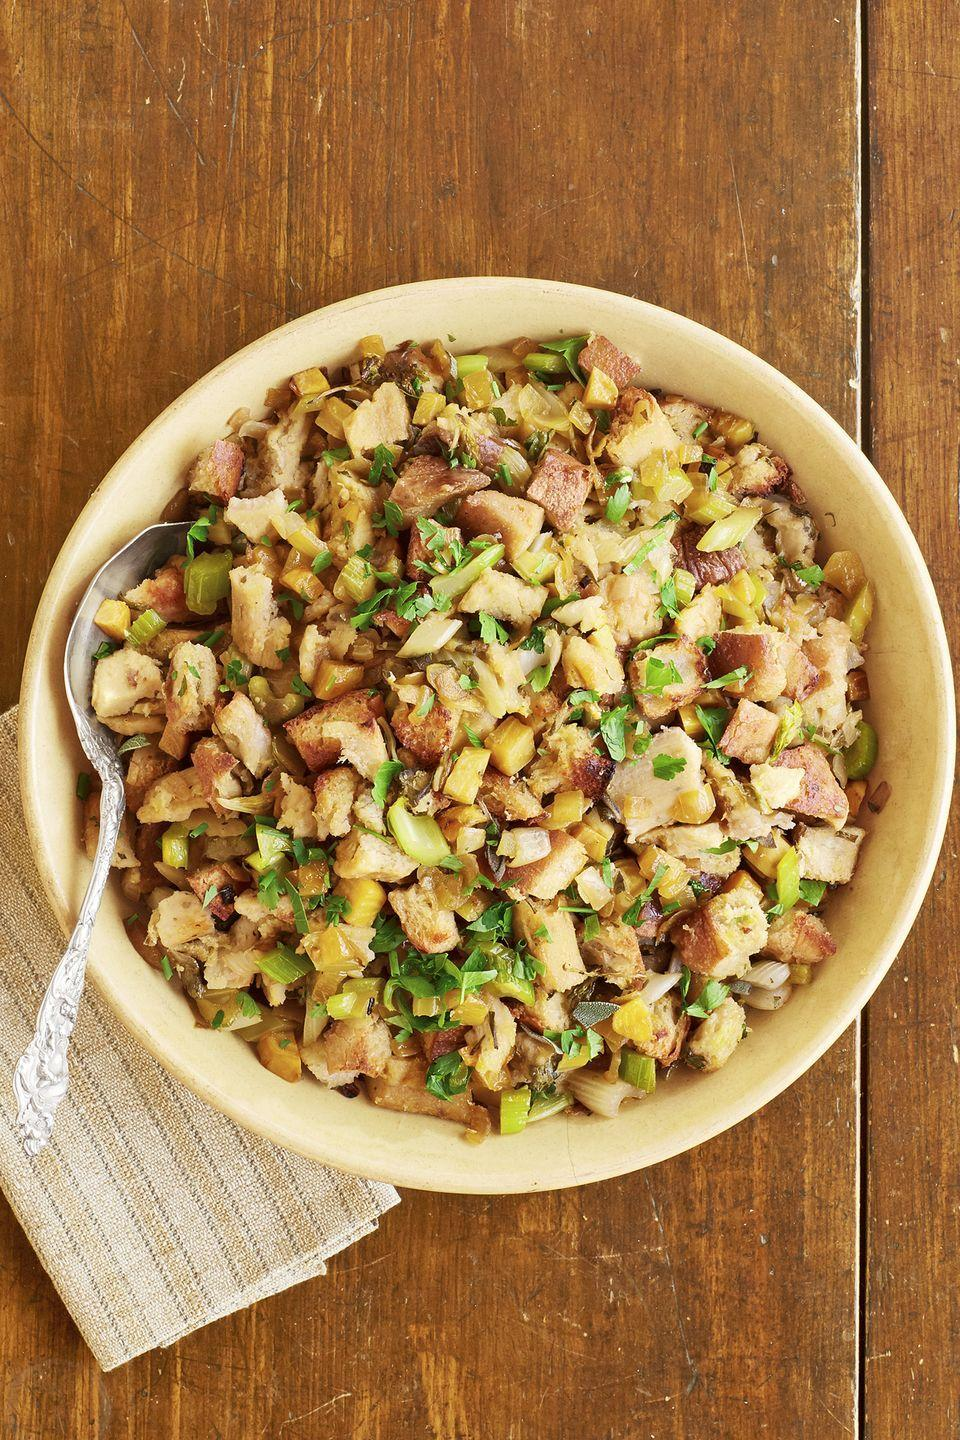 "<p>Dressing, stuffing—no matter what you call it—is a staple at any Thanksgiving dinner, and this spicy version is hard to beat. </p><p><strong><a href=""https://www.countryliving.com/food-drinks/recipes/a45301/tamale-dressing-recipe/"" rel=""nofollow noopener"" target=""_blank"" data-ylk=""slk:Get the recipe"" class=""link rapid-noclick-resp"">Get the recipe</a>.</strong></p><p><a class=""link rapid-noclick-resp"" href=""https://www.amazon.com/Premium-Stainless-Steel-Mixing-Brushed/dp/B01HTYH8YA/?tag=syn-yahoo-20&ascsubtag=%5Bartid%7C10050.g.896%5Bsrc%7Cyahoo-us"" rel=""nofollow noopener"" target=""_blank"" data-ylk=""slk:SHOP MIXING BOWLS"">SHOP MIXING BOWLS</a><br></p>"